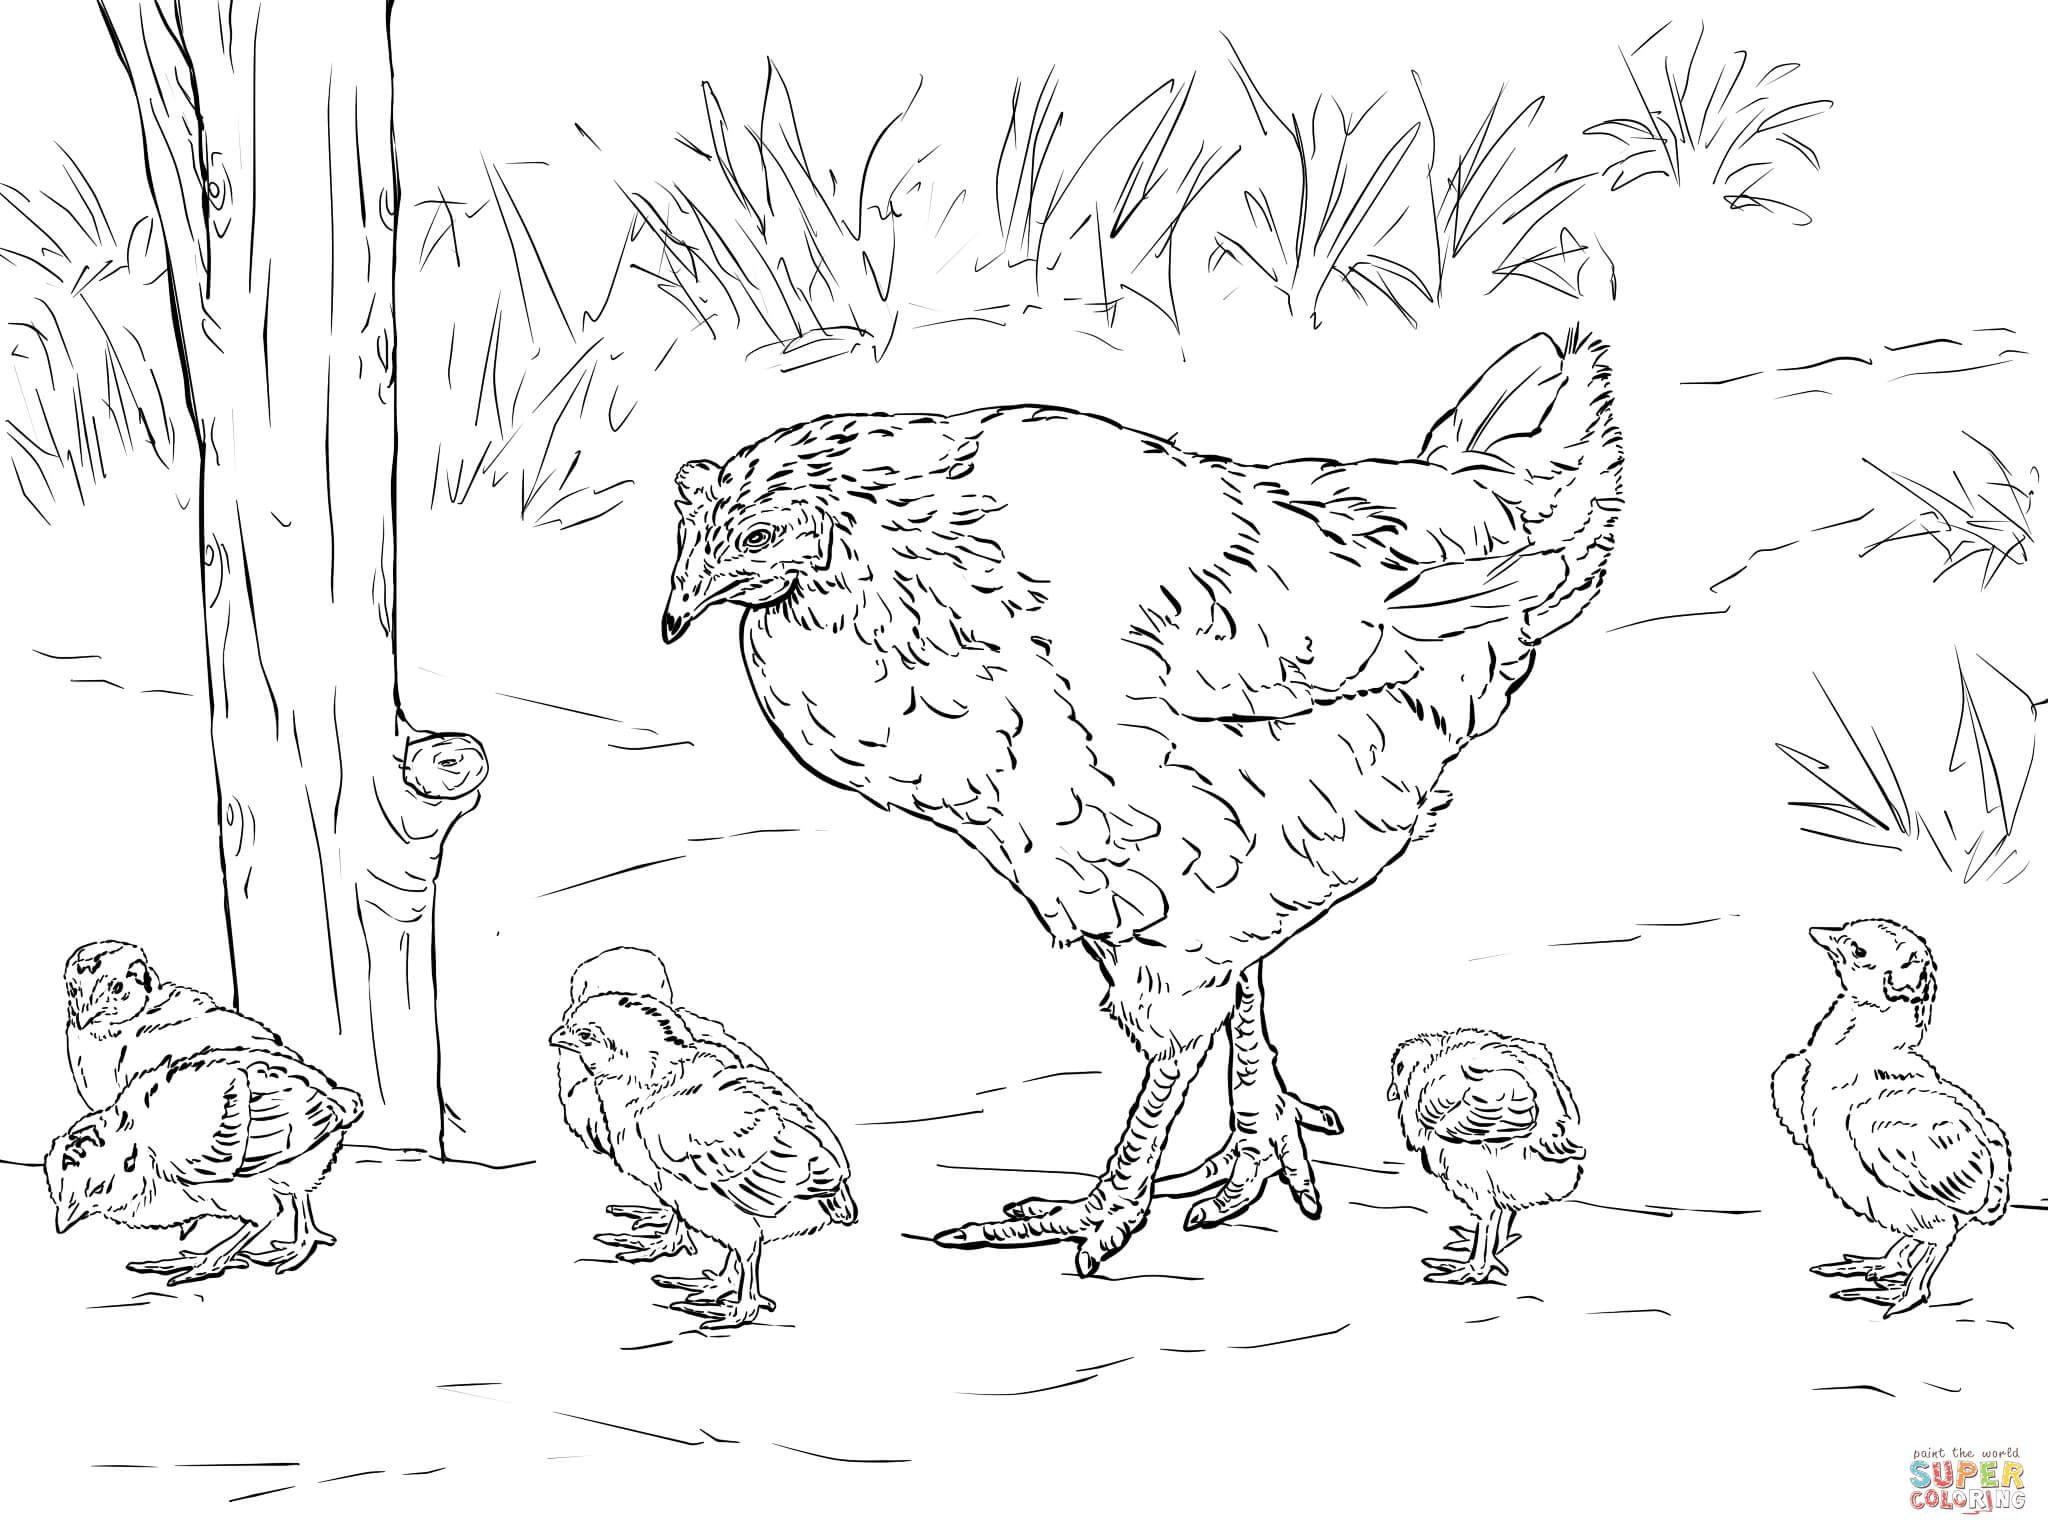 Hen Sits on Eggs coloring page | Free Printable Coloring Pages | art ...